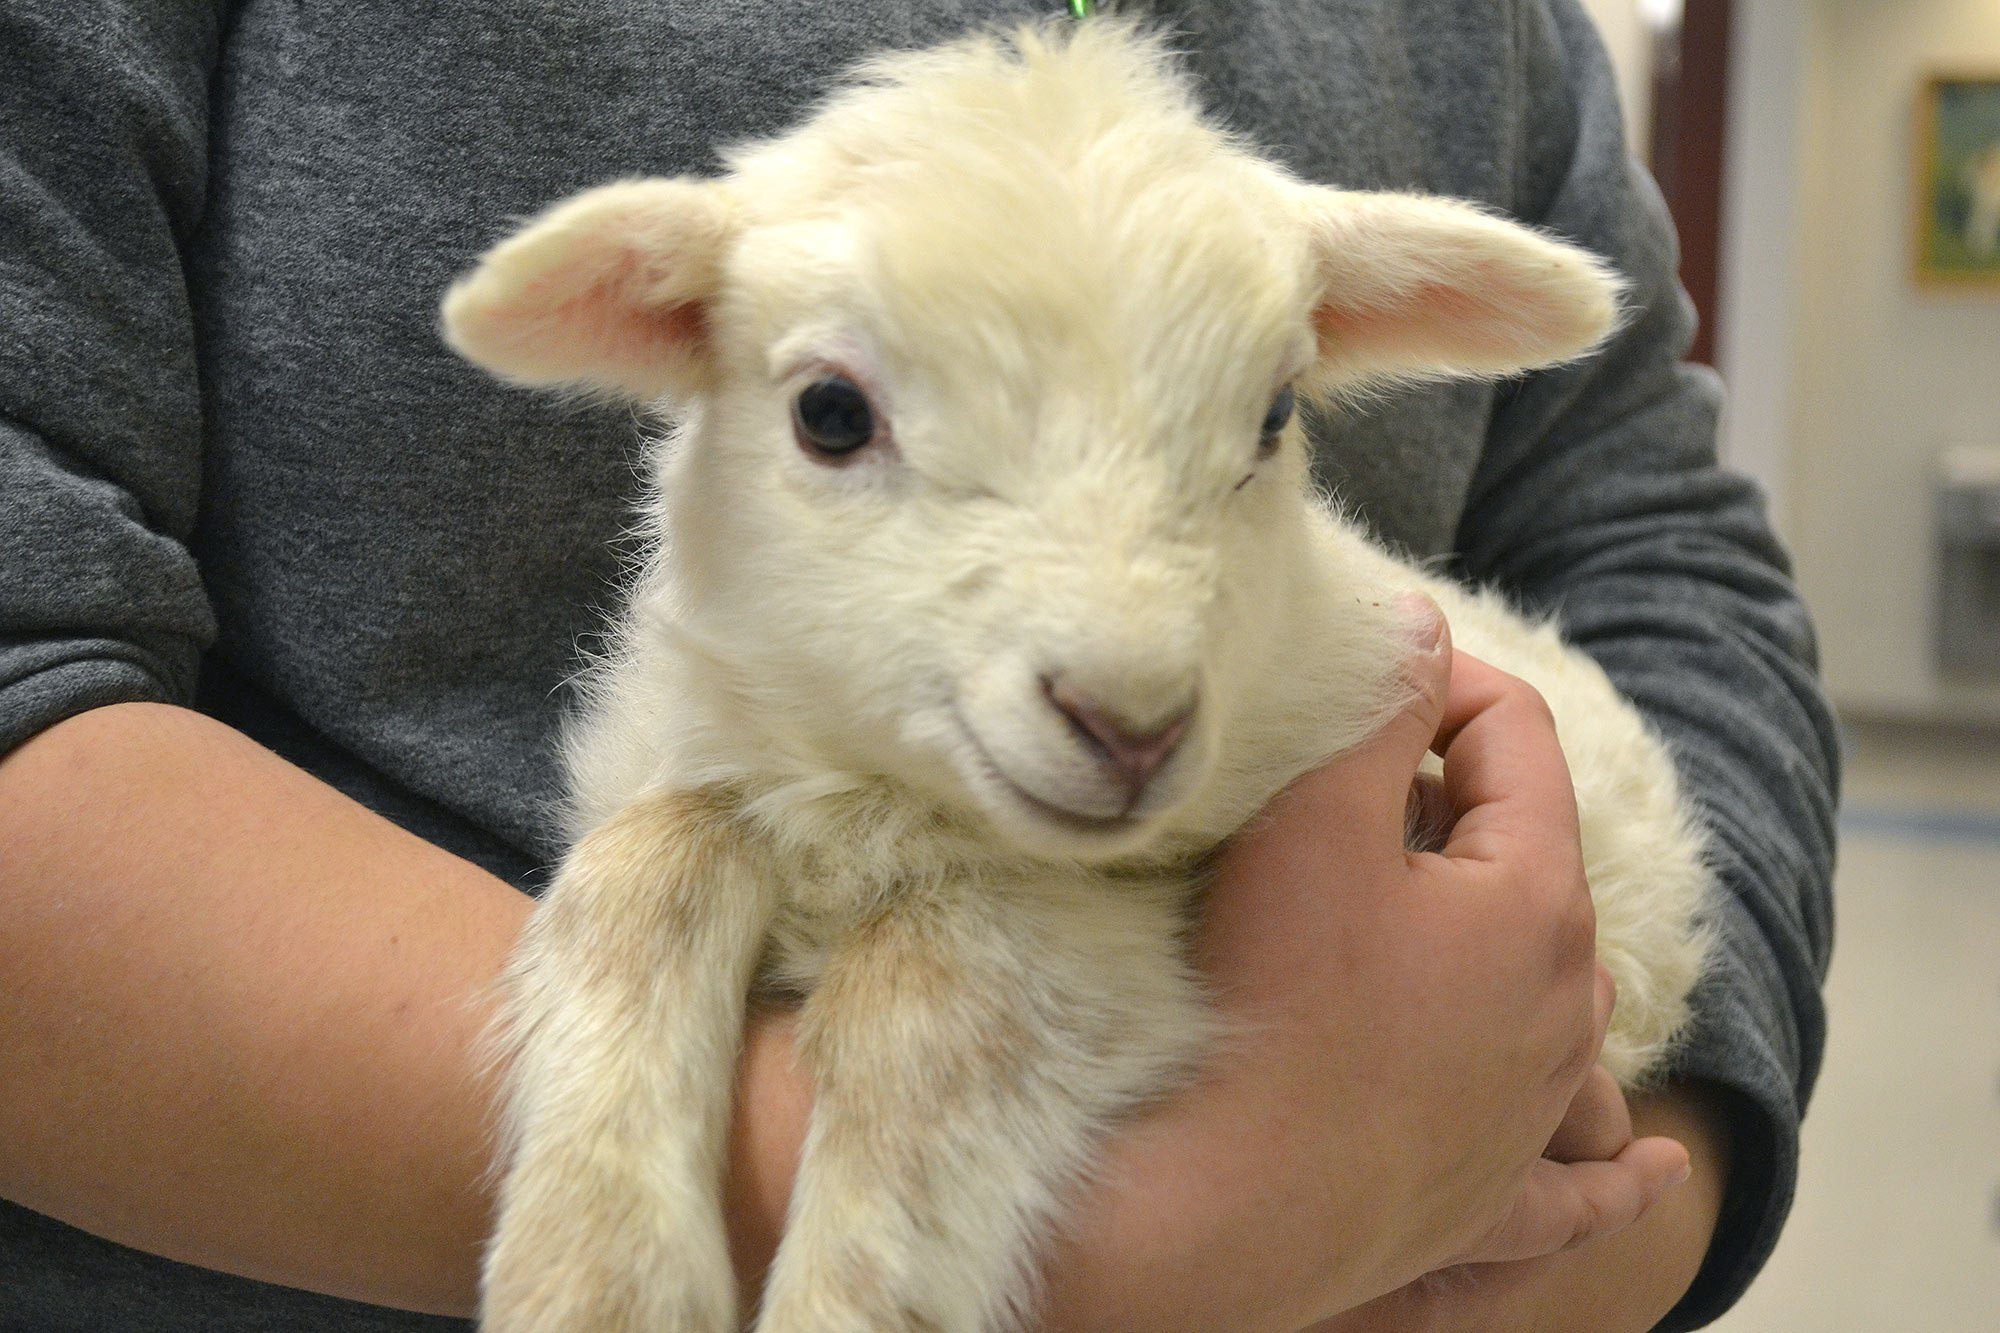 Beautiful baby sheep